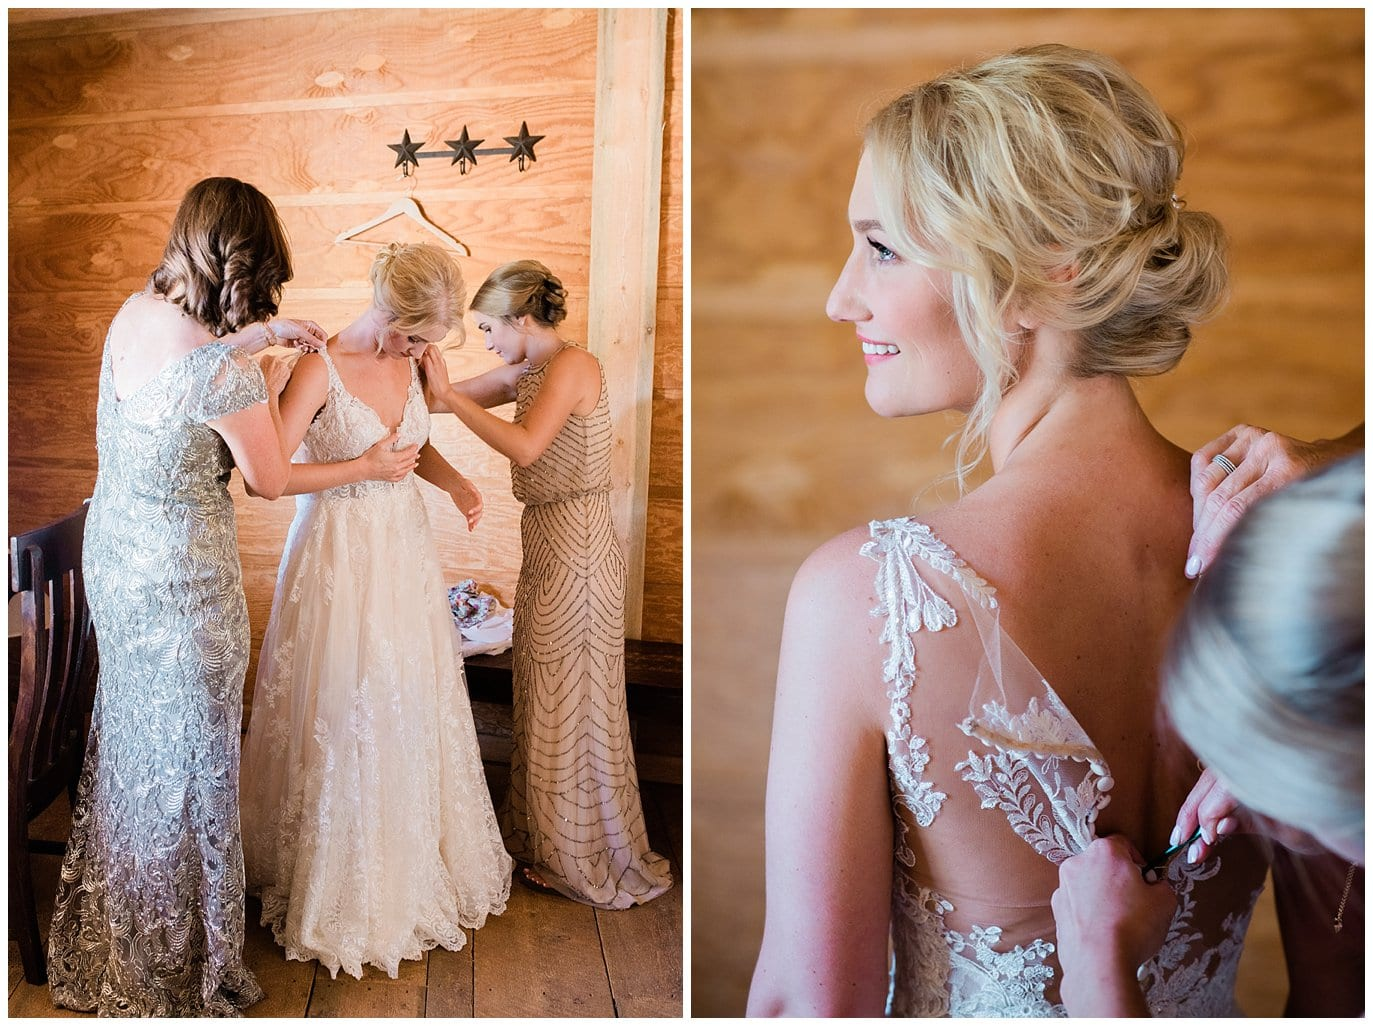 Bride getting dressed in Bride's Room at Summer Piney River Ranch wedding by Vail wedding photographer Jennie Crate, Photographer